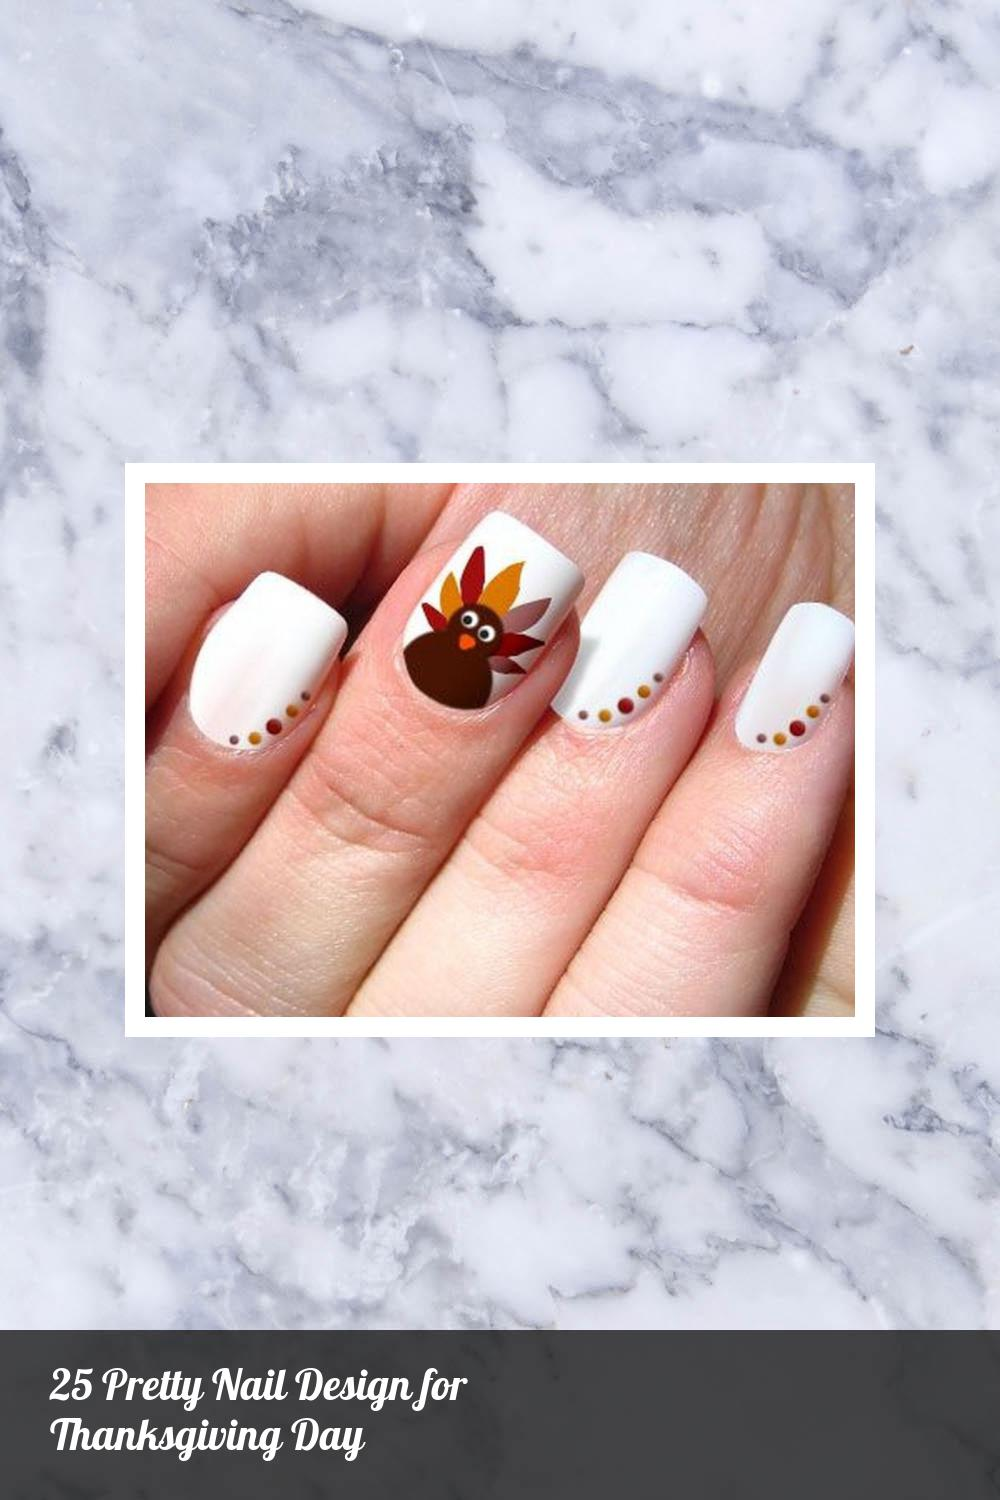 25 Pretty Nail Design for Thanksgiving Day 9